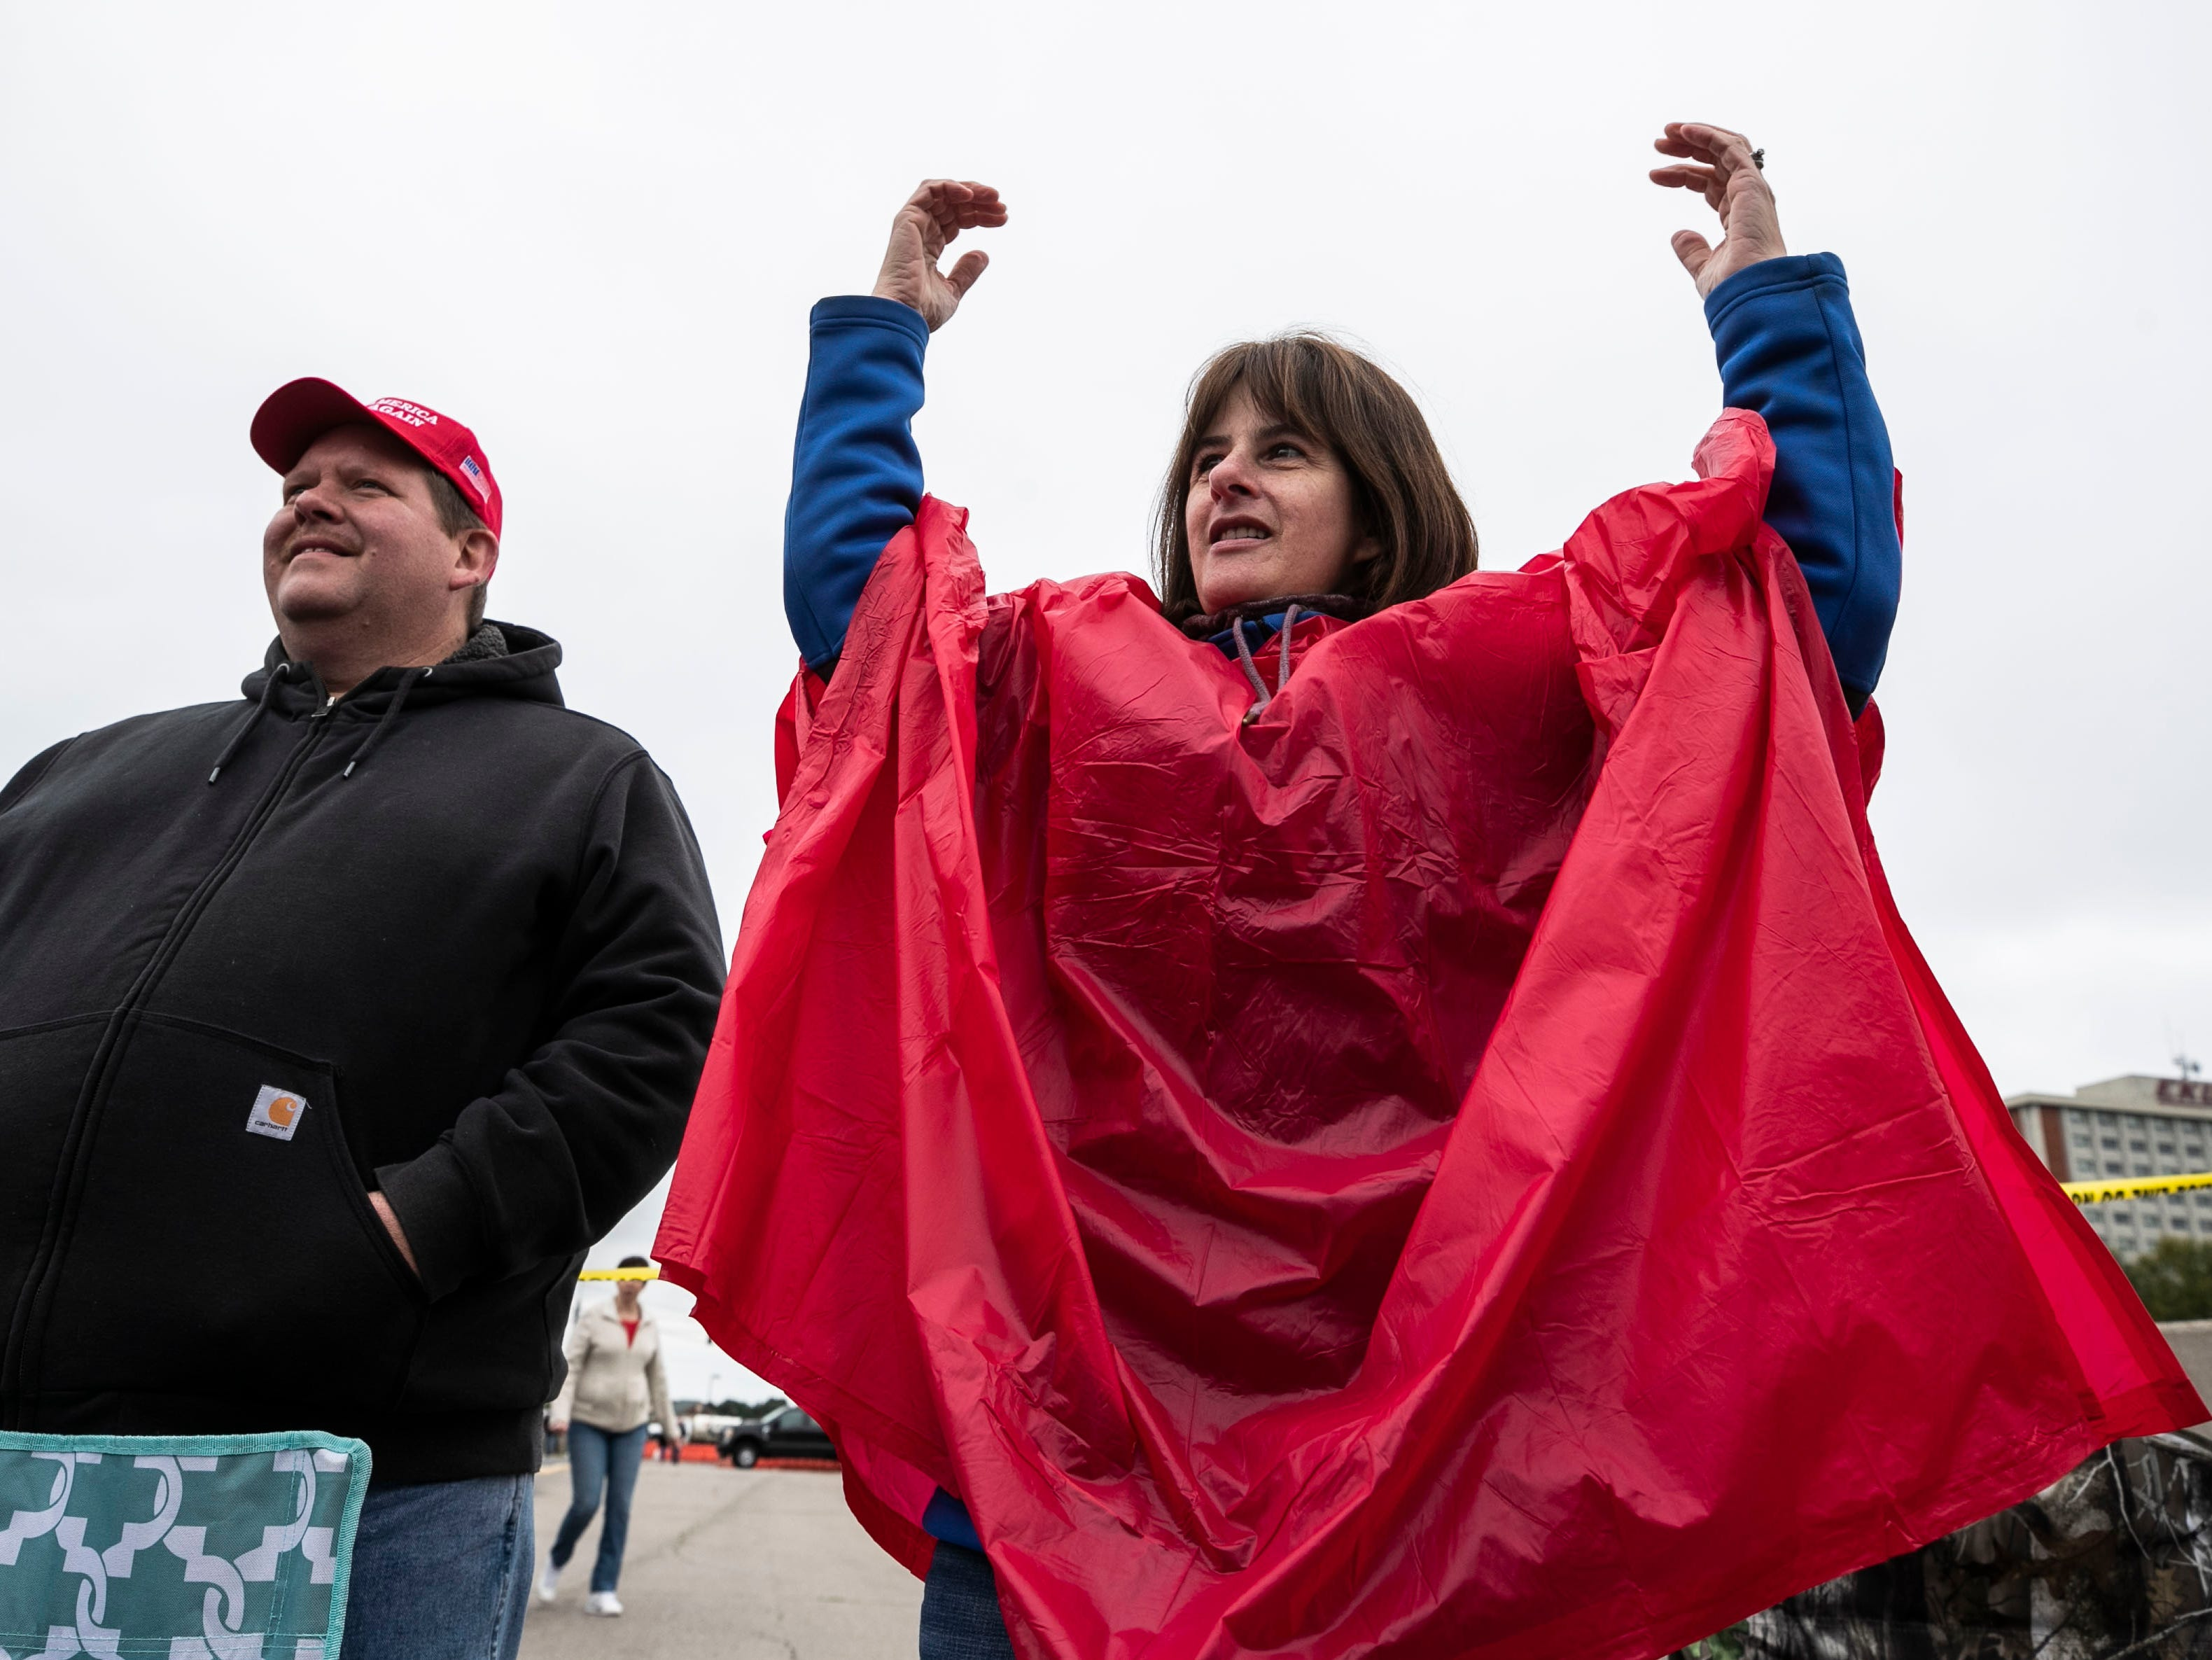 Trump supporter Angela Ward of Chicago dances to the Village People's 'YMCA' as it played on the loudspeakers in a parking lot outside the Alumni Coliseum. Hundreds of people were lined up to see the President.